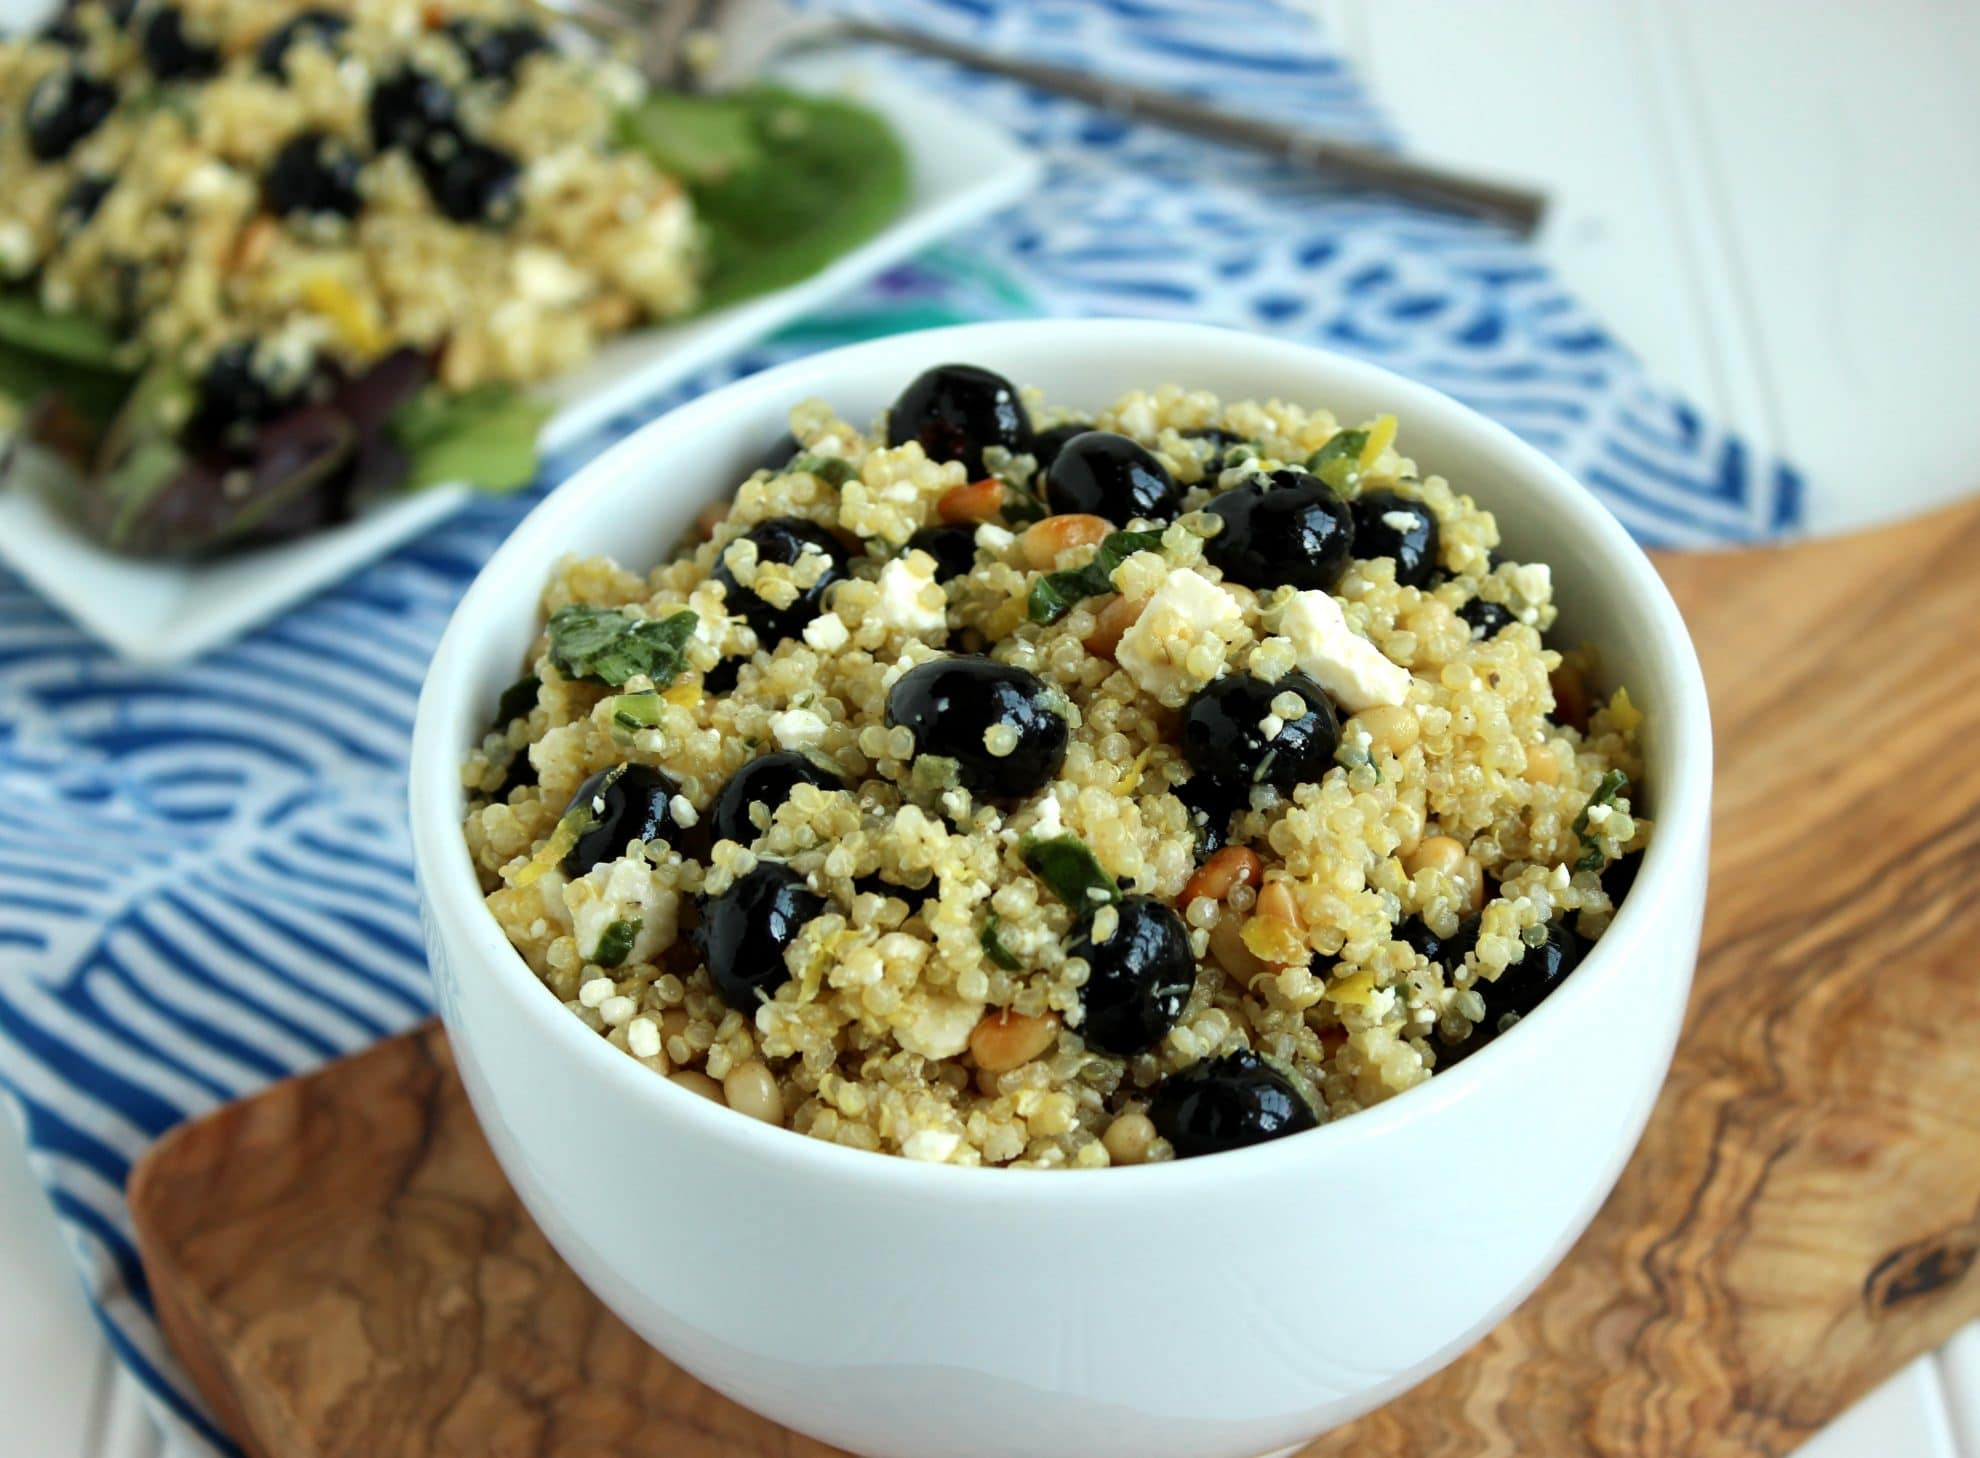 Blueberry, Feta and Quinoa Salad